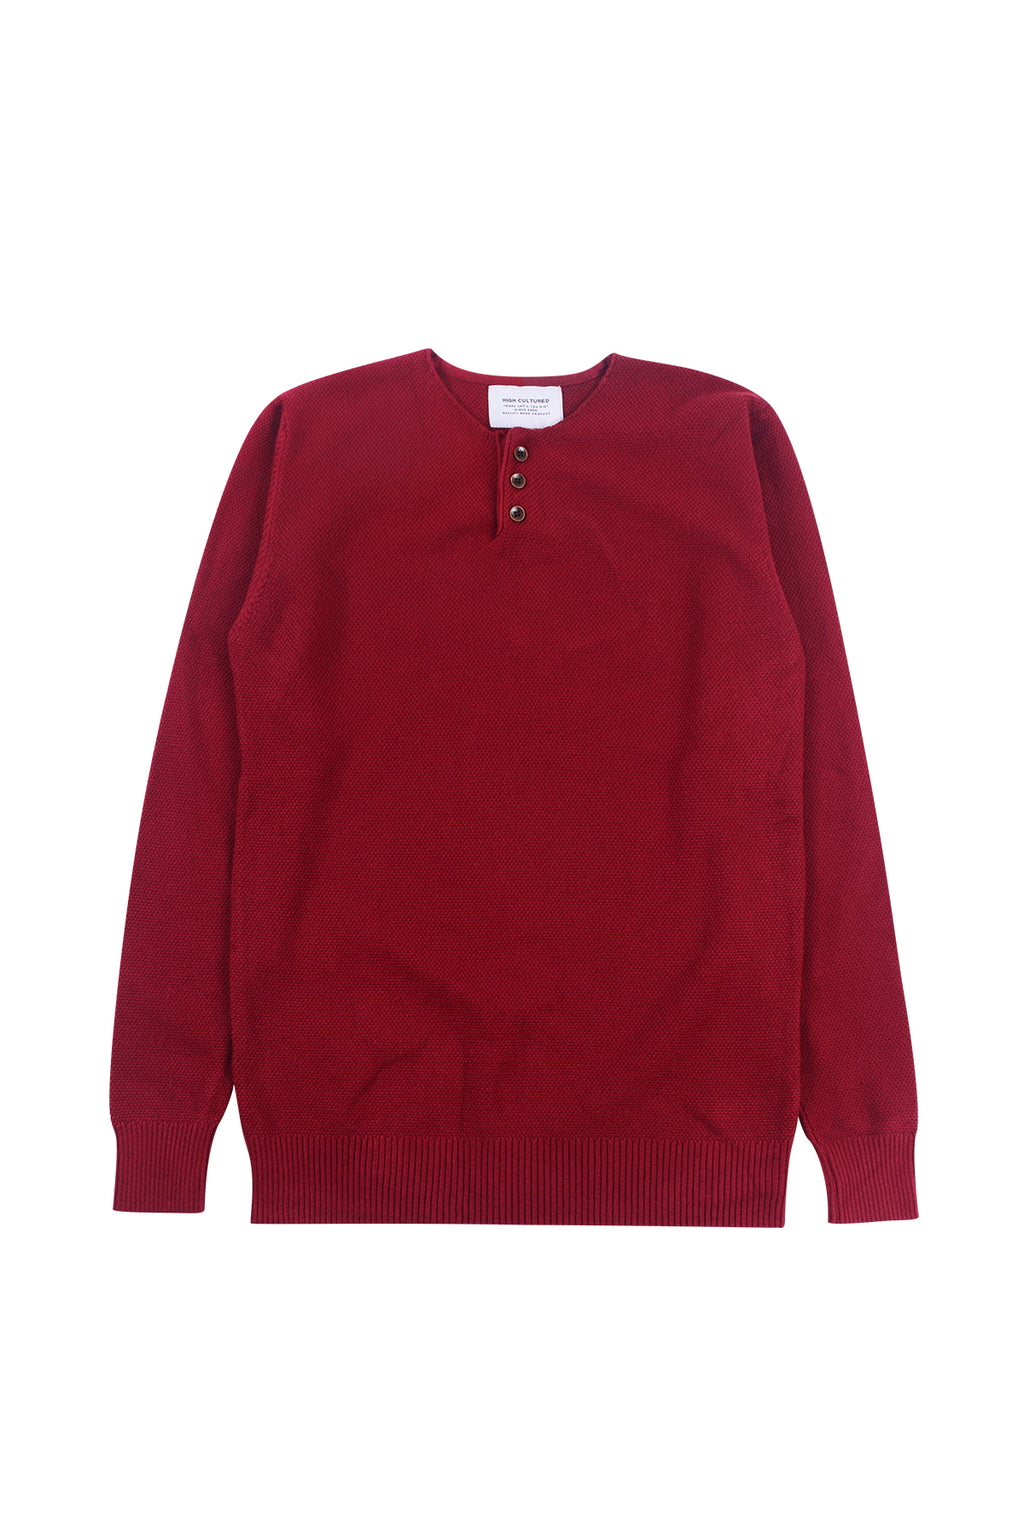 THREE-BUTTON WAFFLE KNIT SWEATER | MAROON - 185